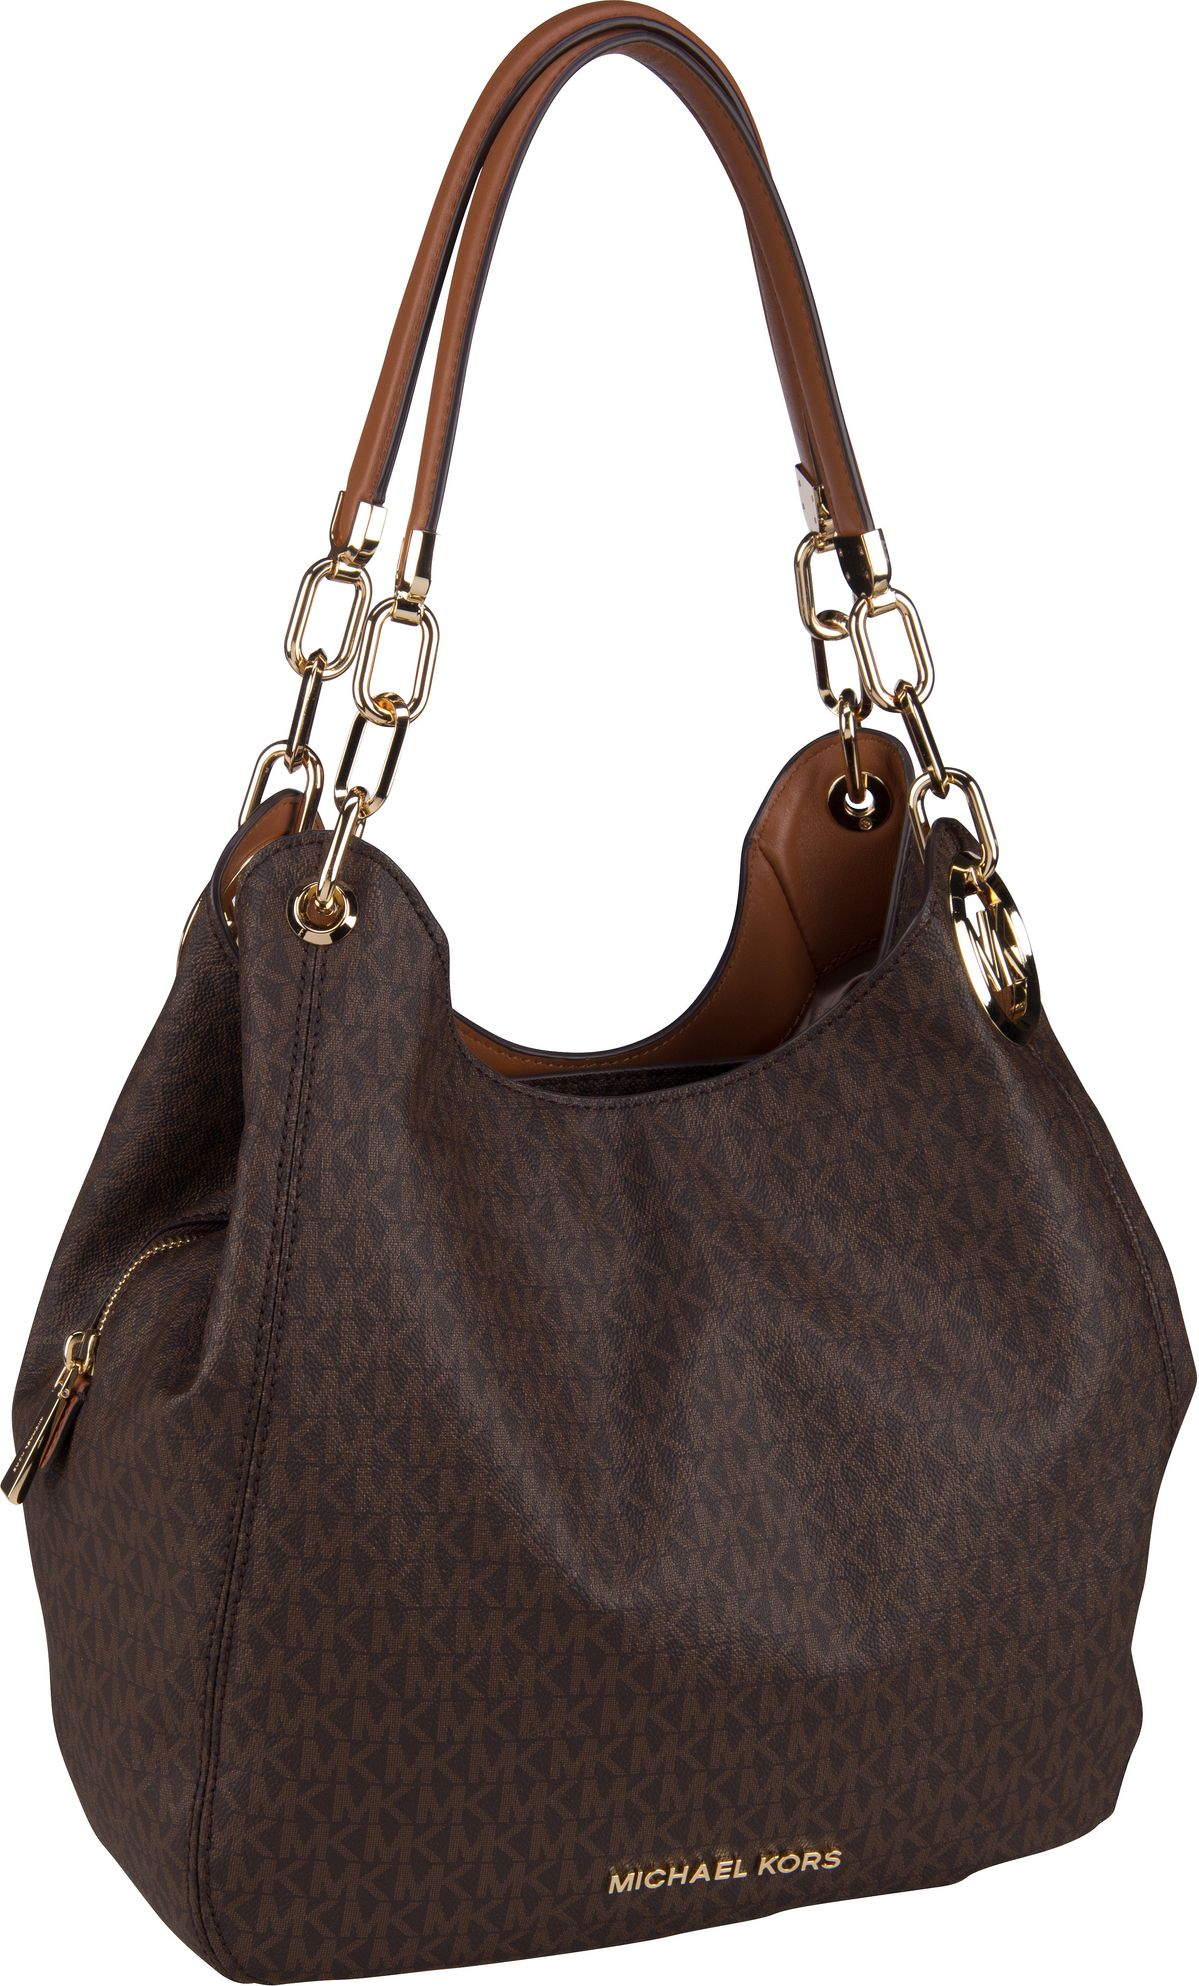 Michael Kors Handtasche Lillie Large Chain Shoulder Tote Brown/Acorn